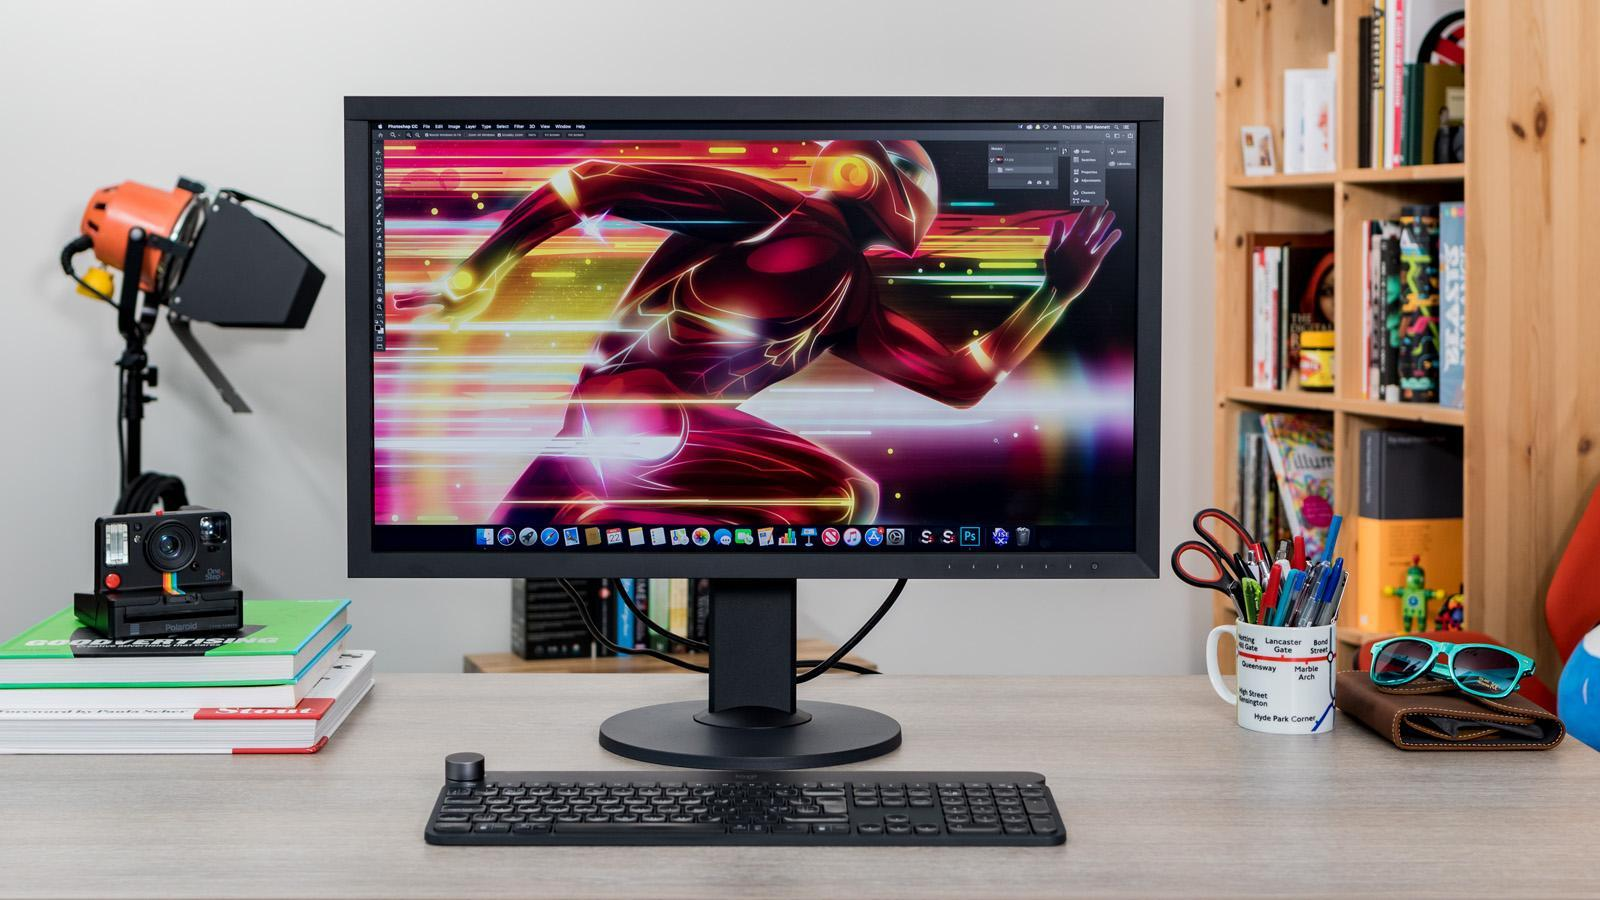 The Best Monitors for Art and Design - Digital Arts